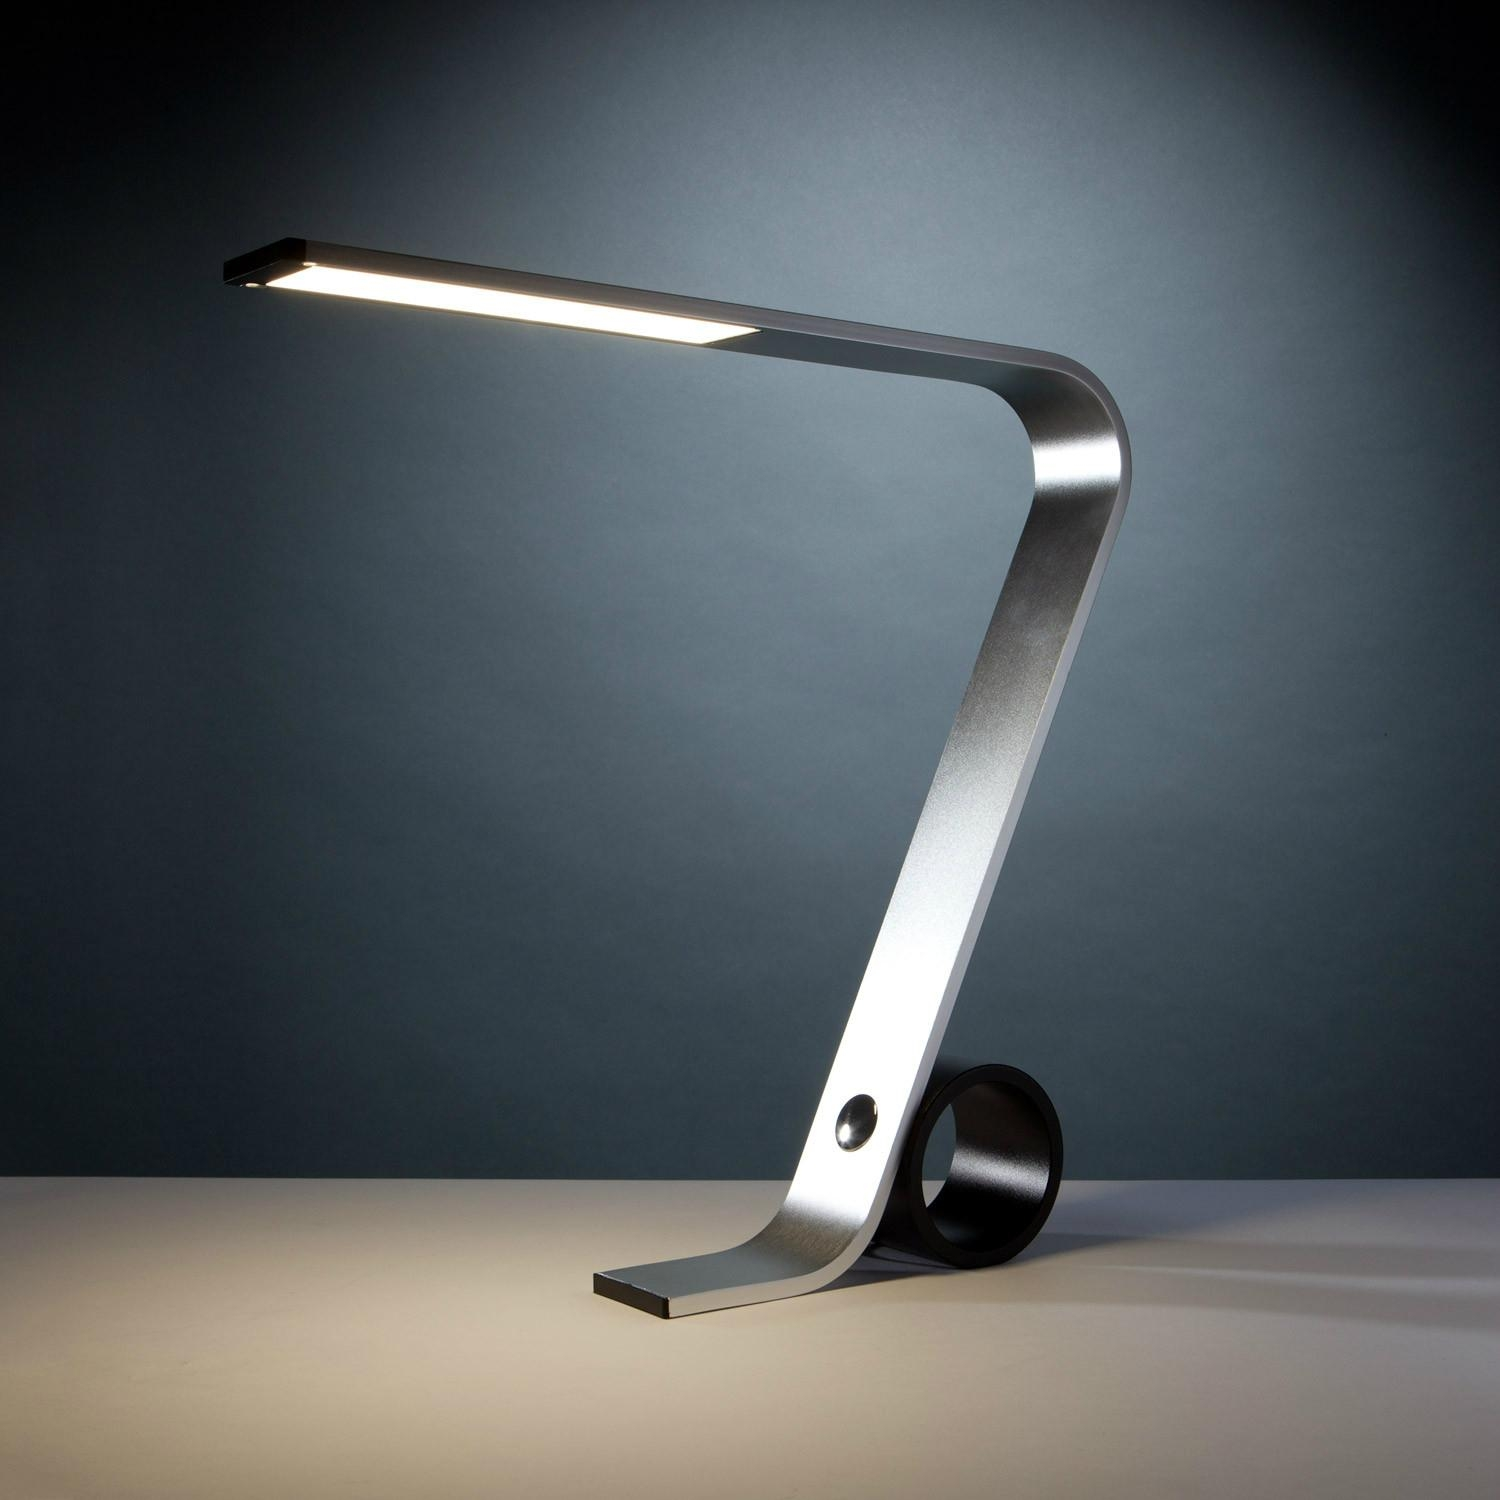 LED Desk Lamp With USB Port Amp Modern Design